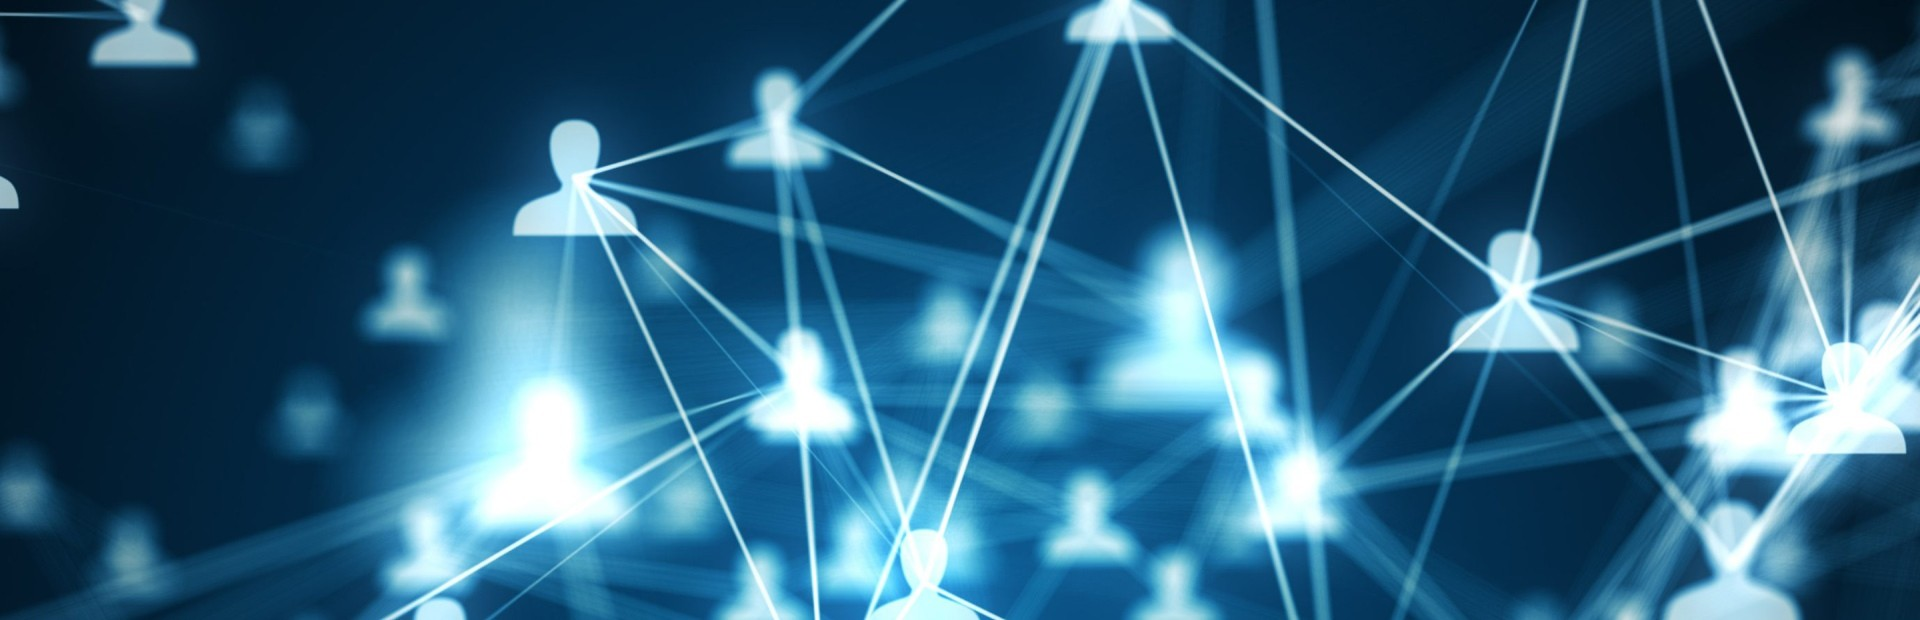 blue graphic network background